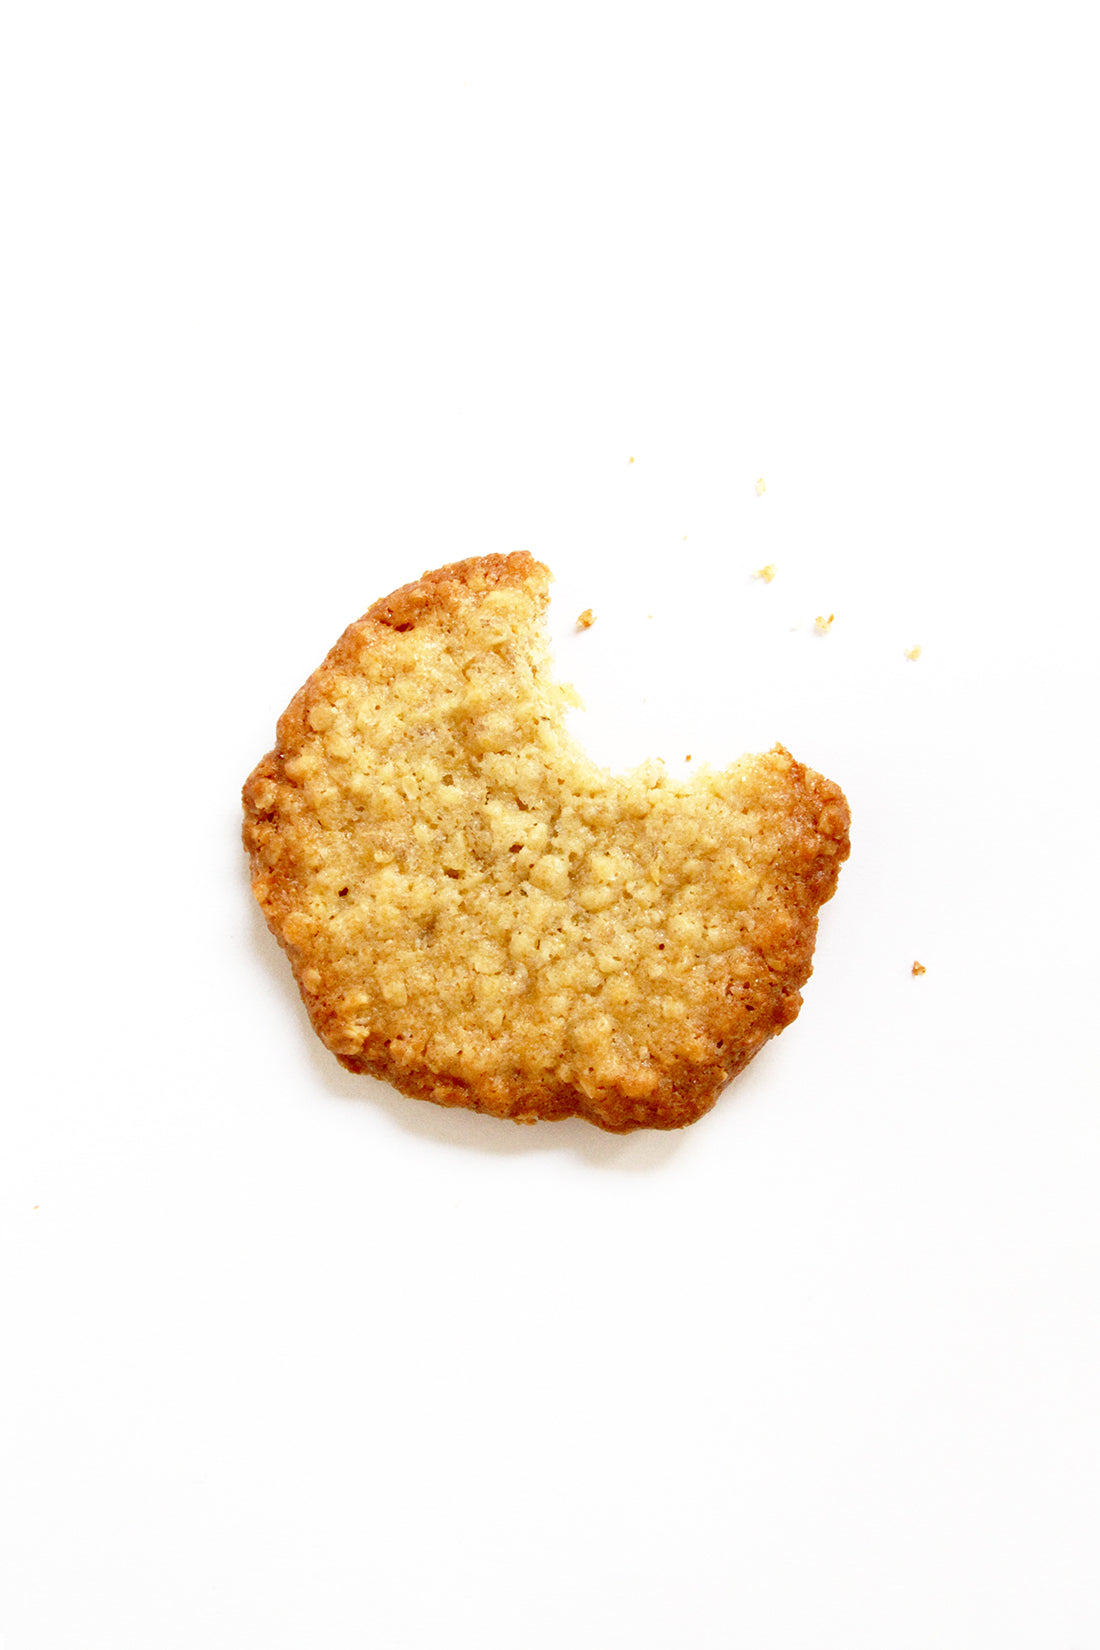 Image of the top of a Miss Jones Baking Co Ginger Oatmeal Drop Cookie with a bite taken out of it